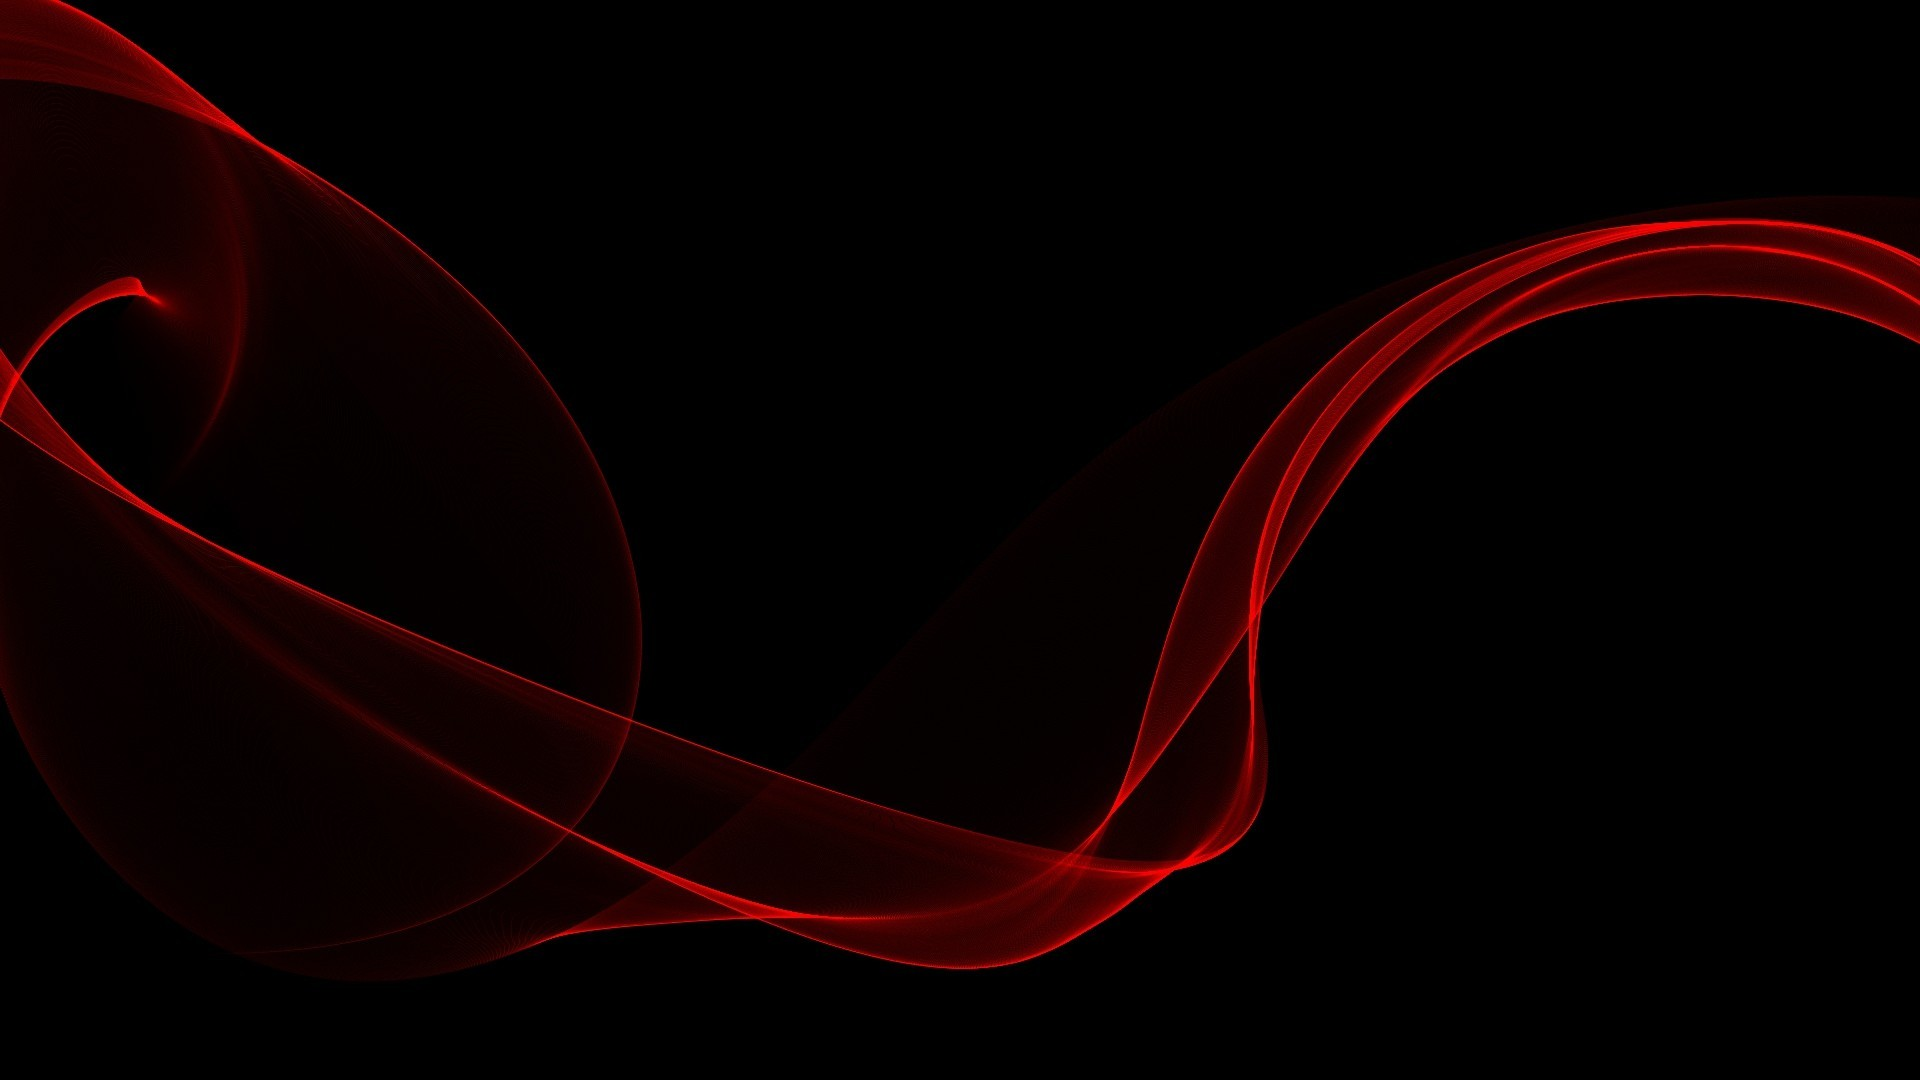 Black Abstract Wallpaper (69+ images)